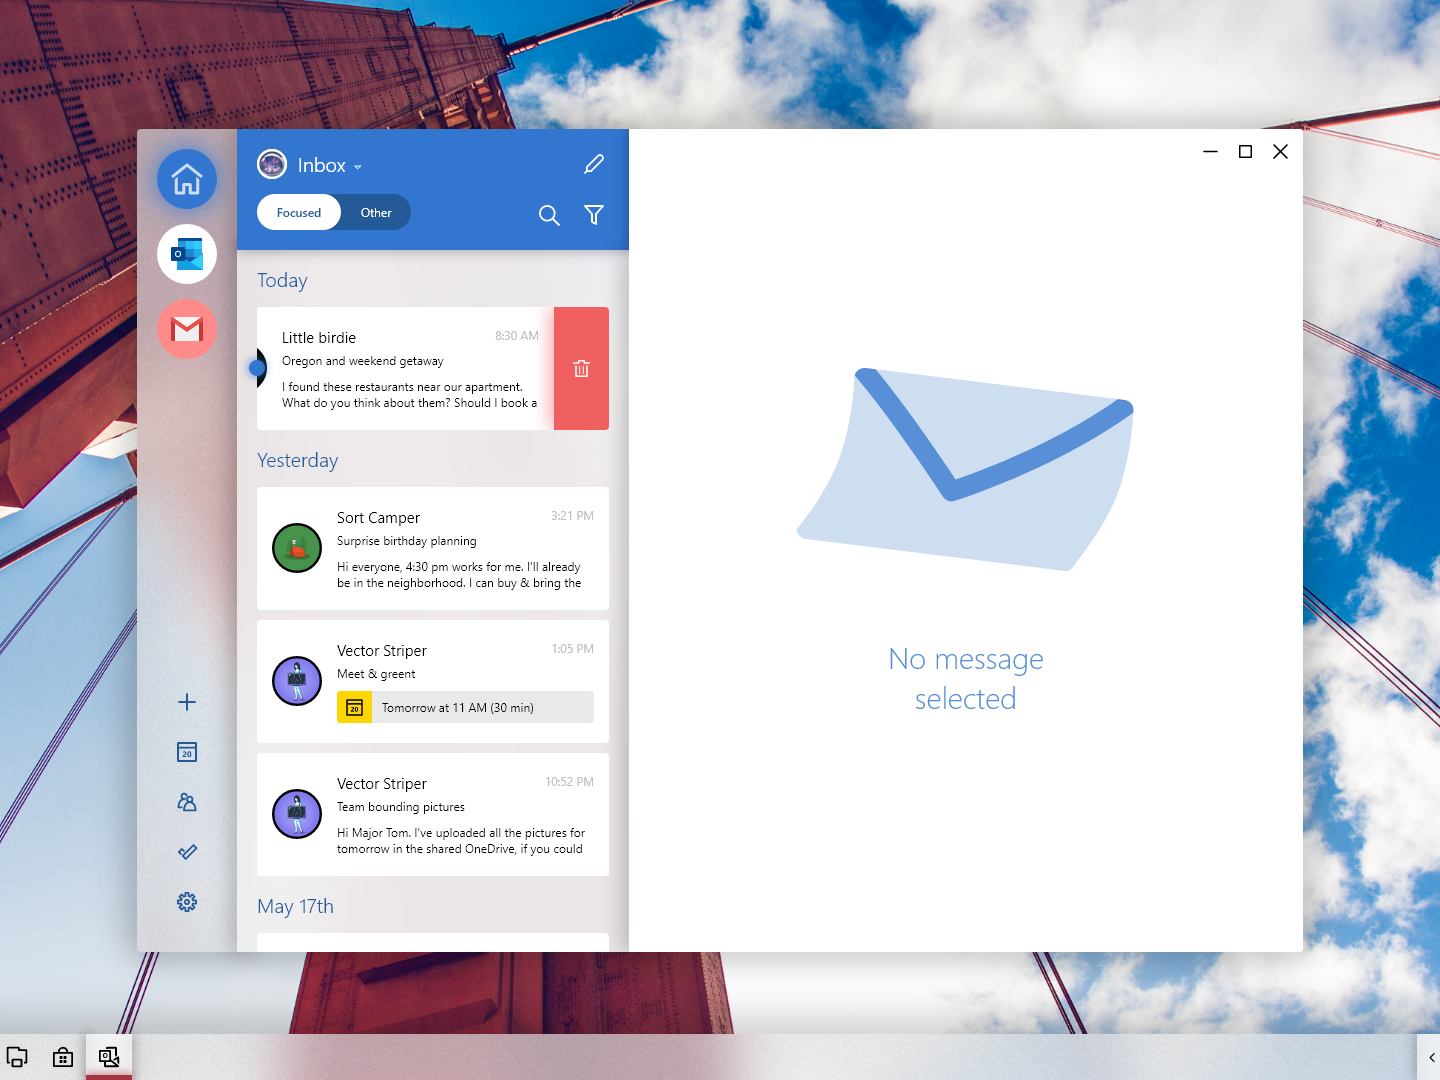 Windows London Mail email yahoo gmail outlook delete swipe inbox mailbox mail app adobexd windows 10 windows ux ui microsoft fluent design fluent